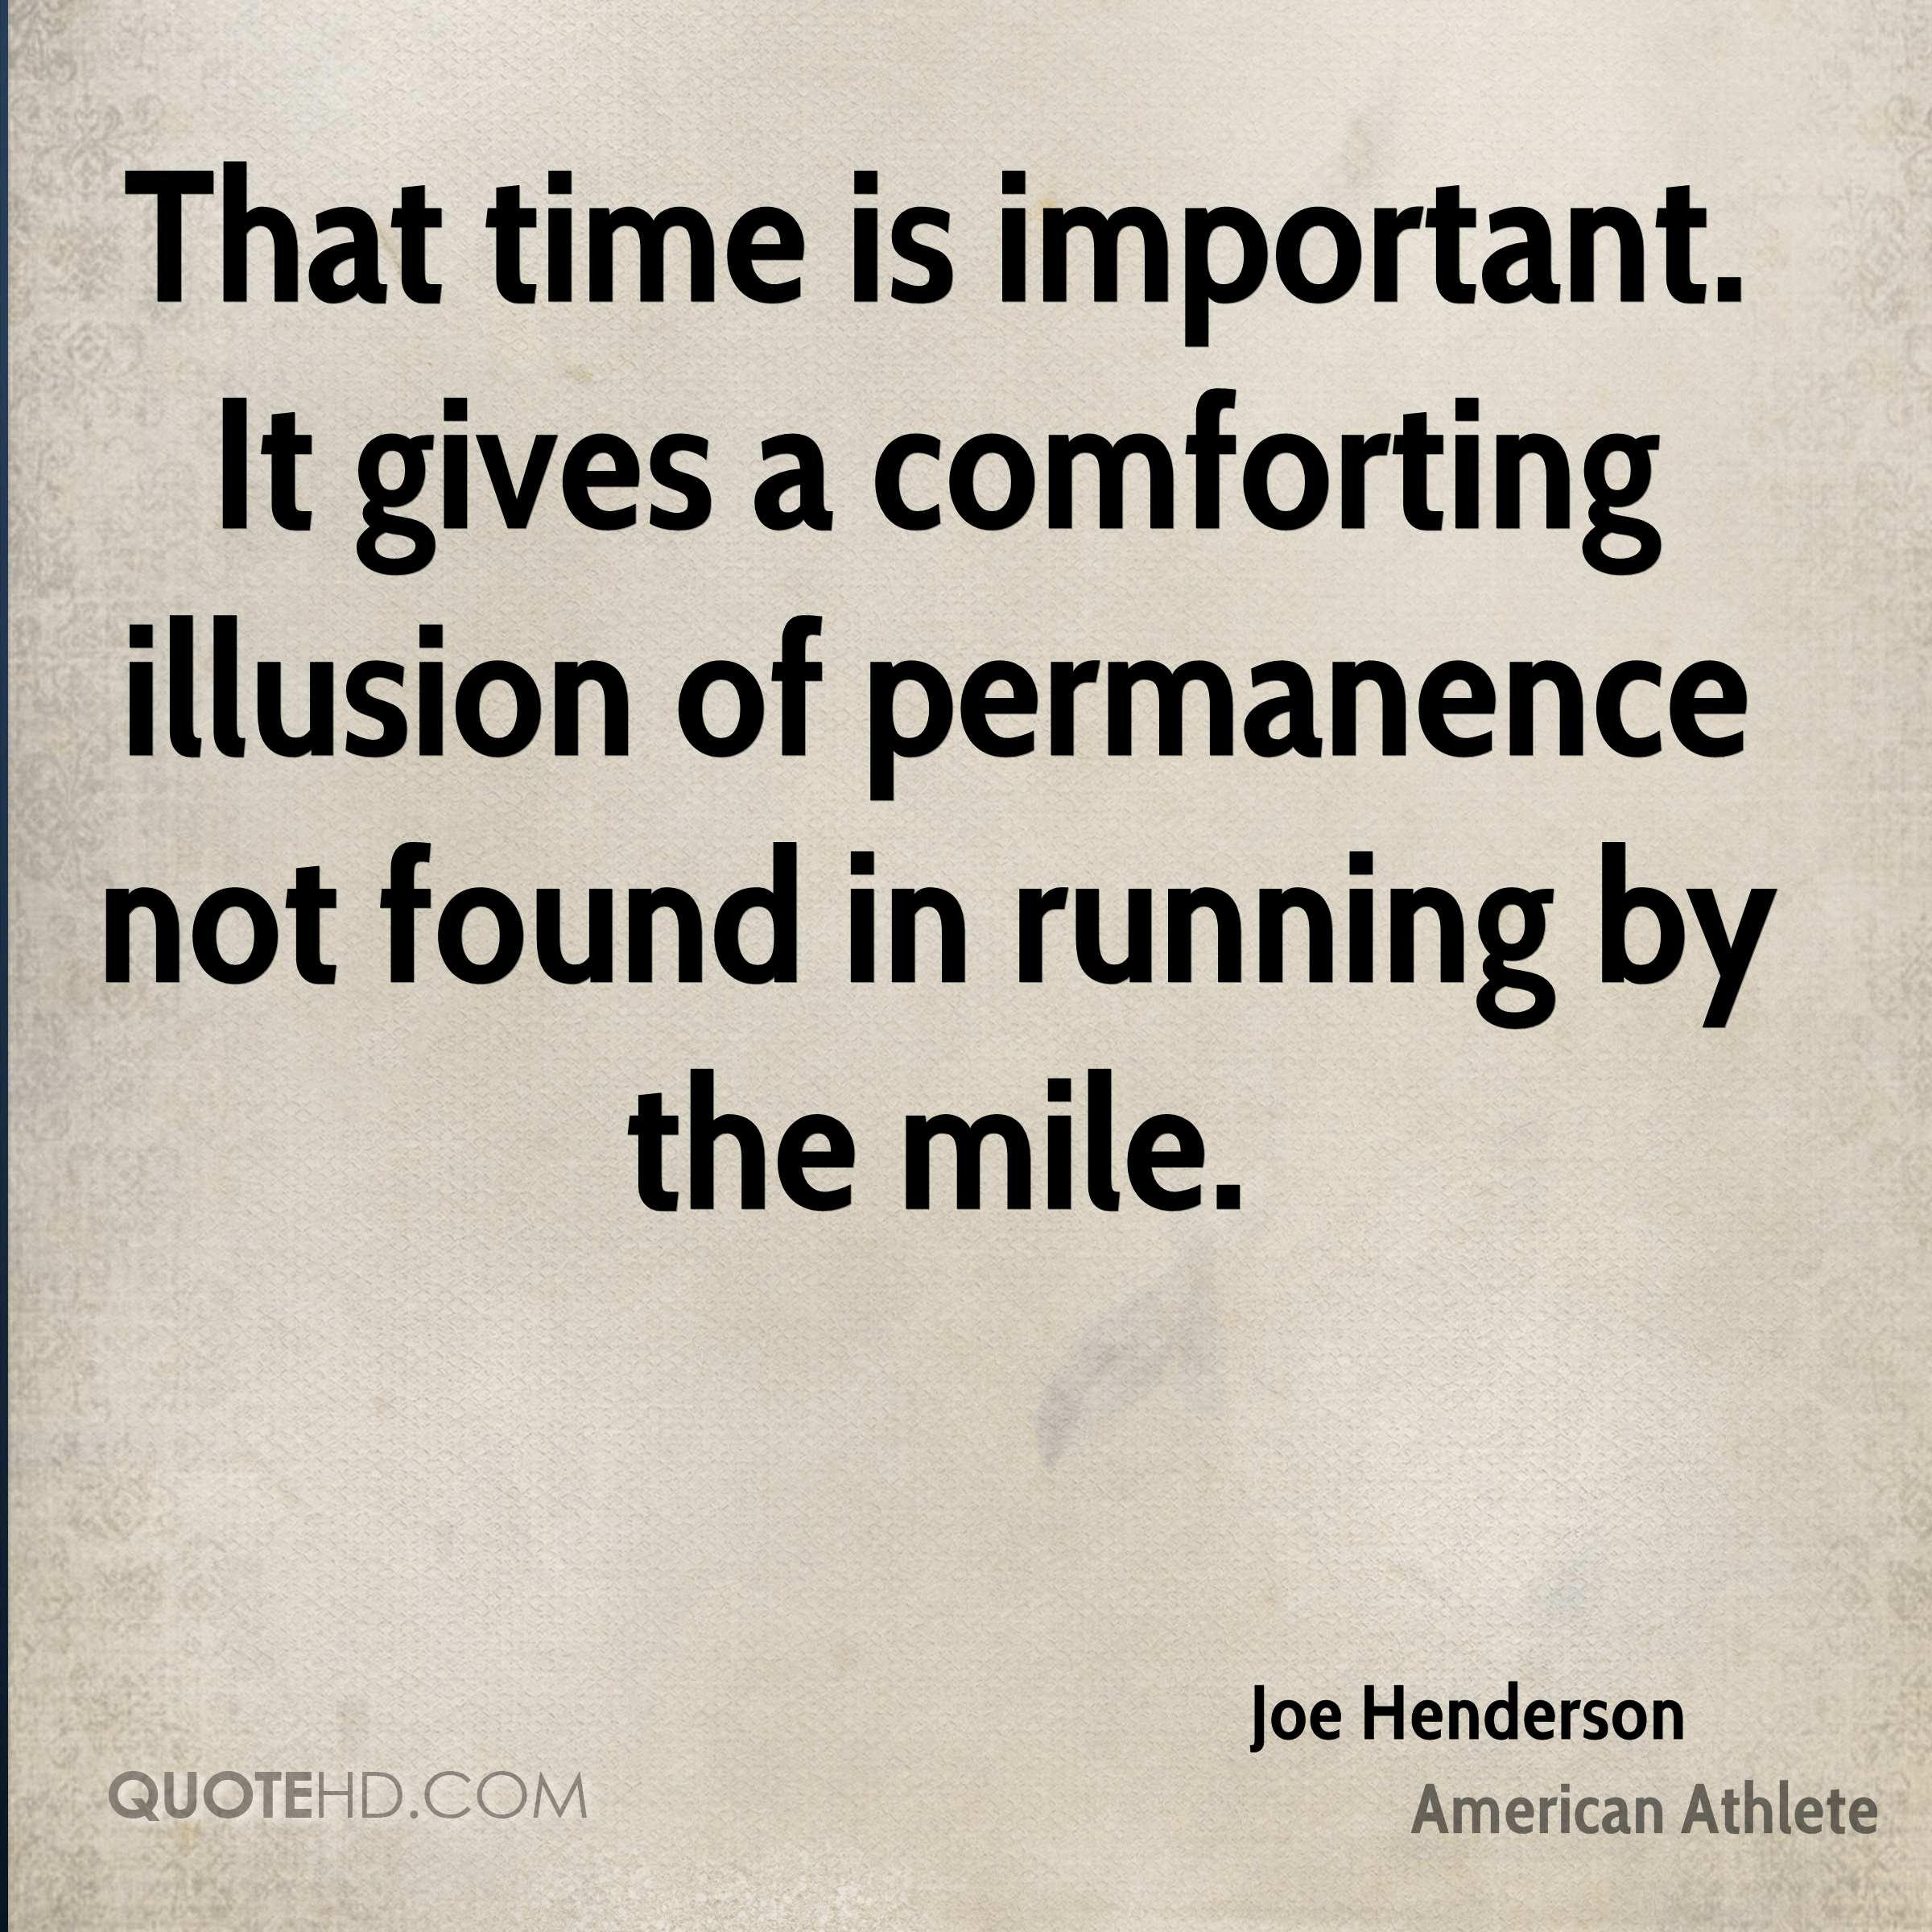 Quotes On The Importance Of Time: Joe Henderson Quotes